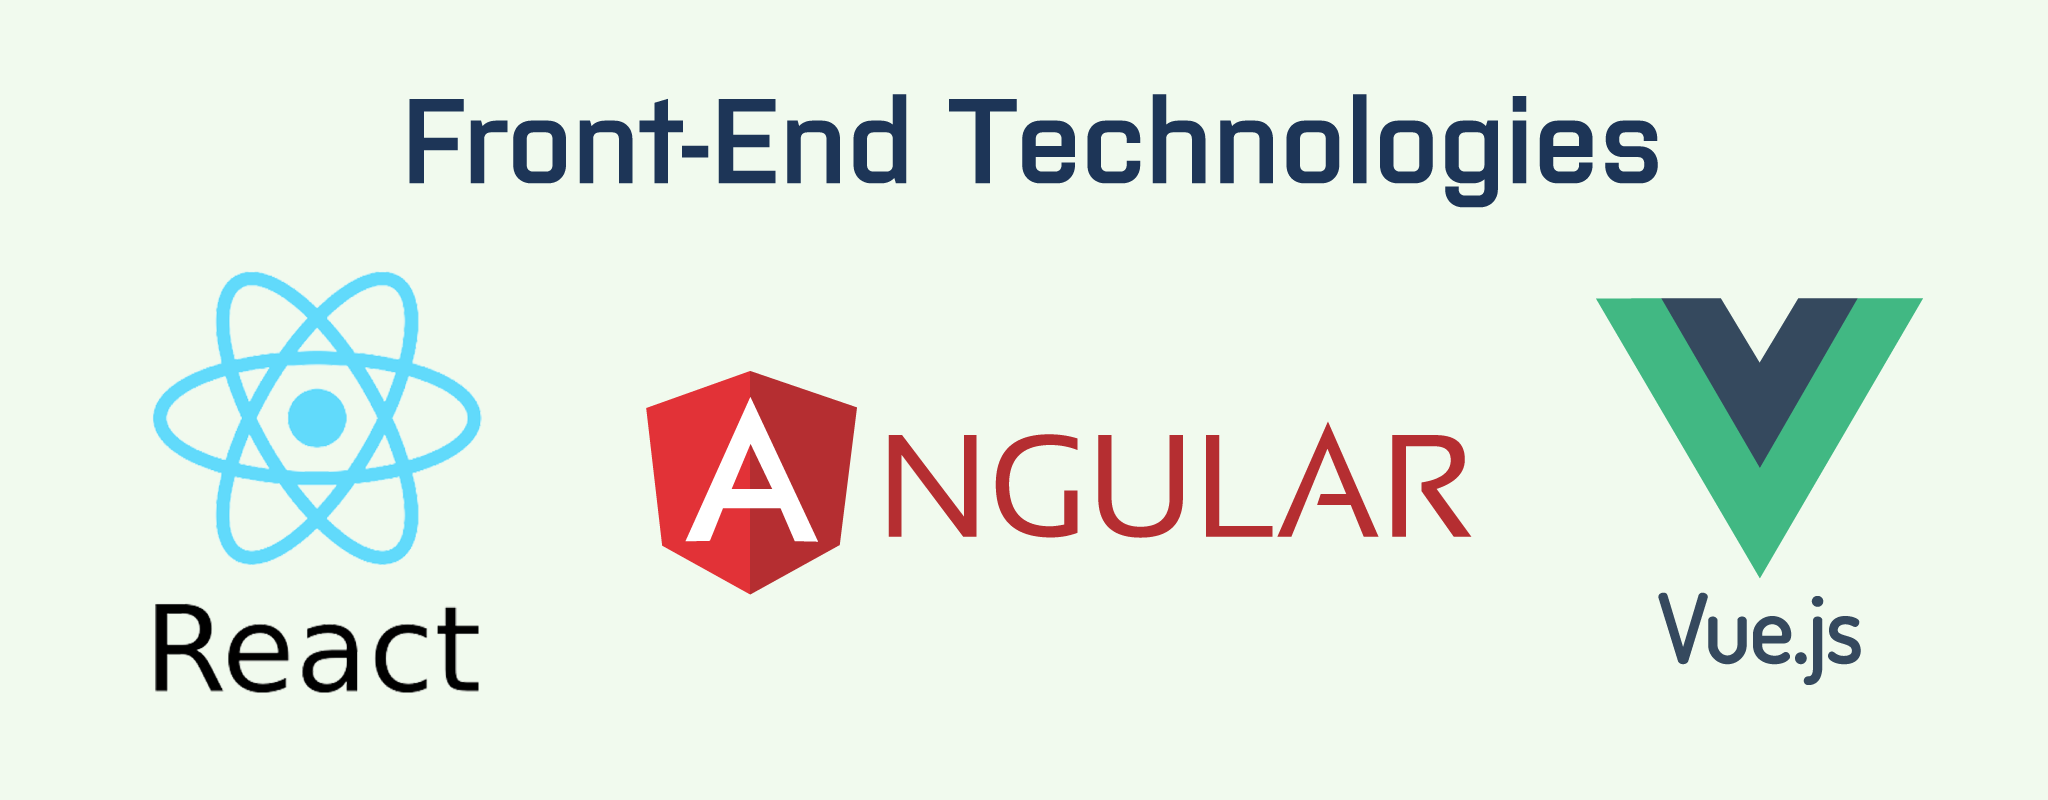 Front-end technologies